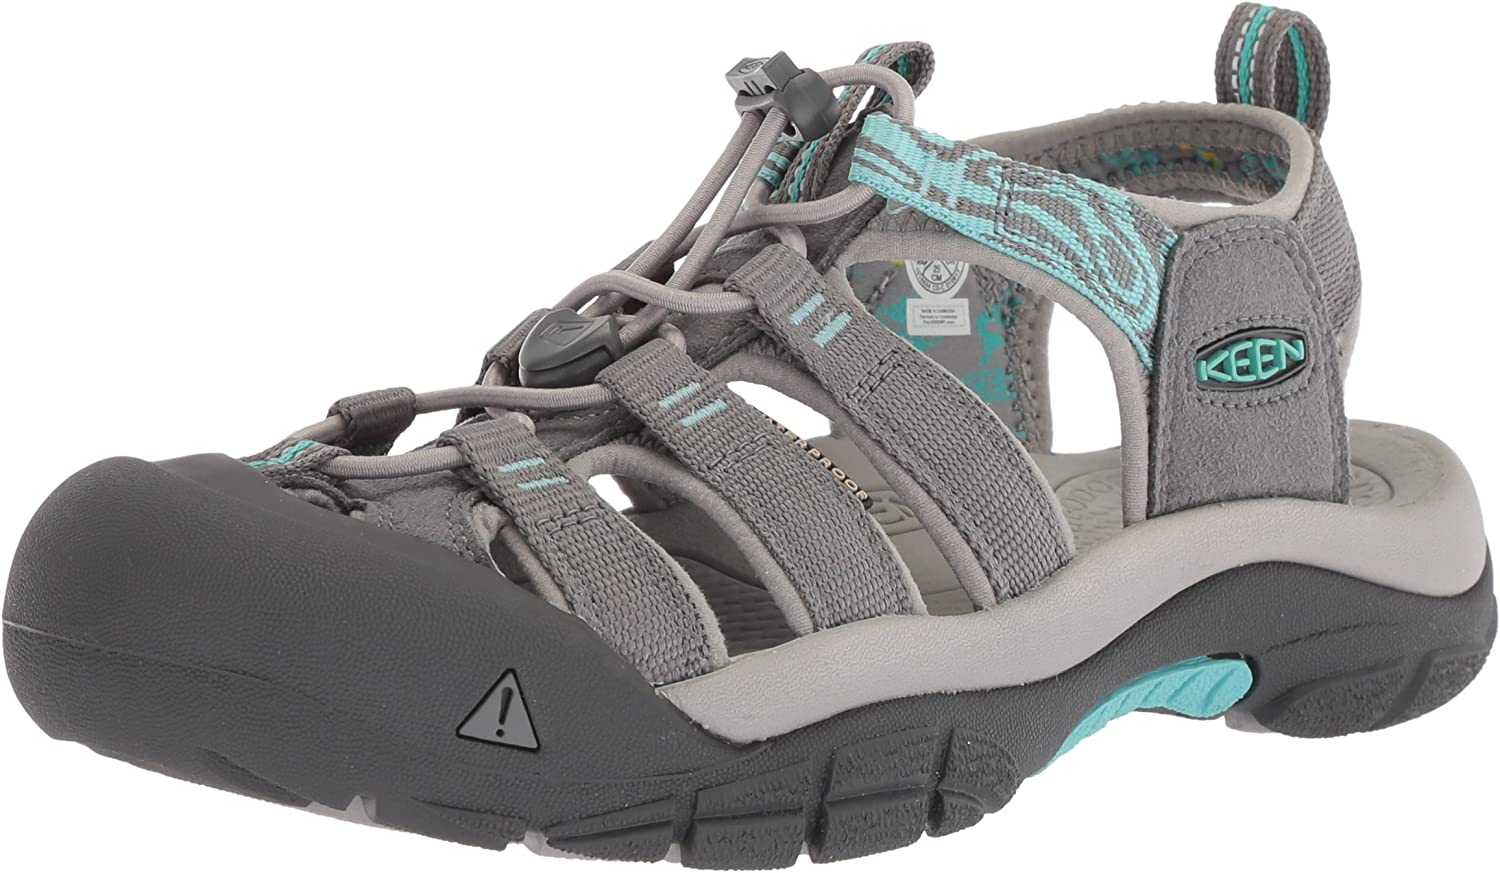 Keen Womens Newport Hydro Sandals